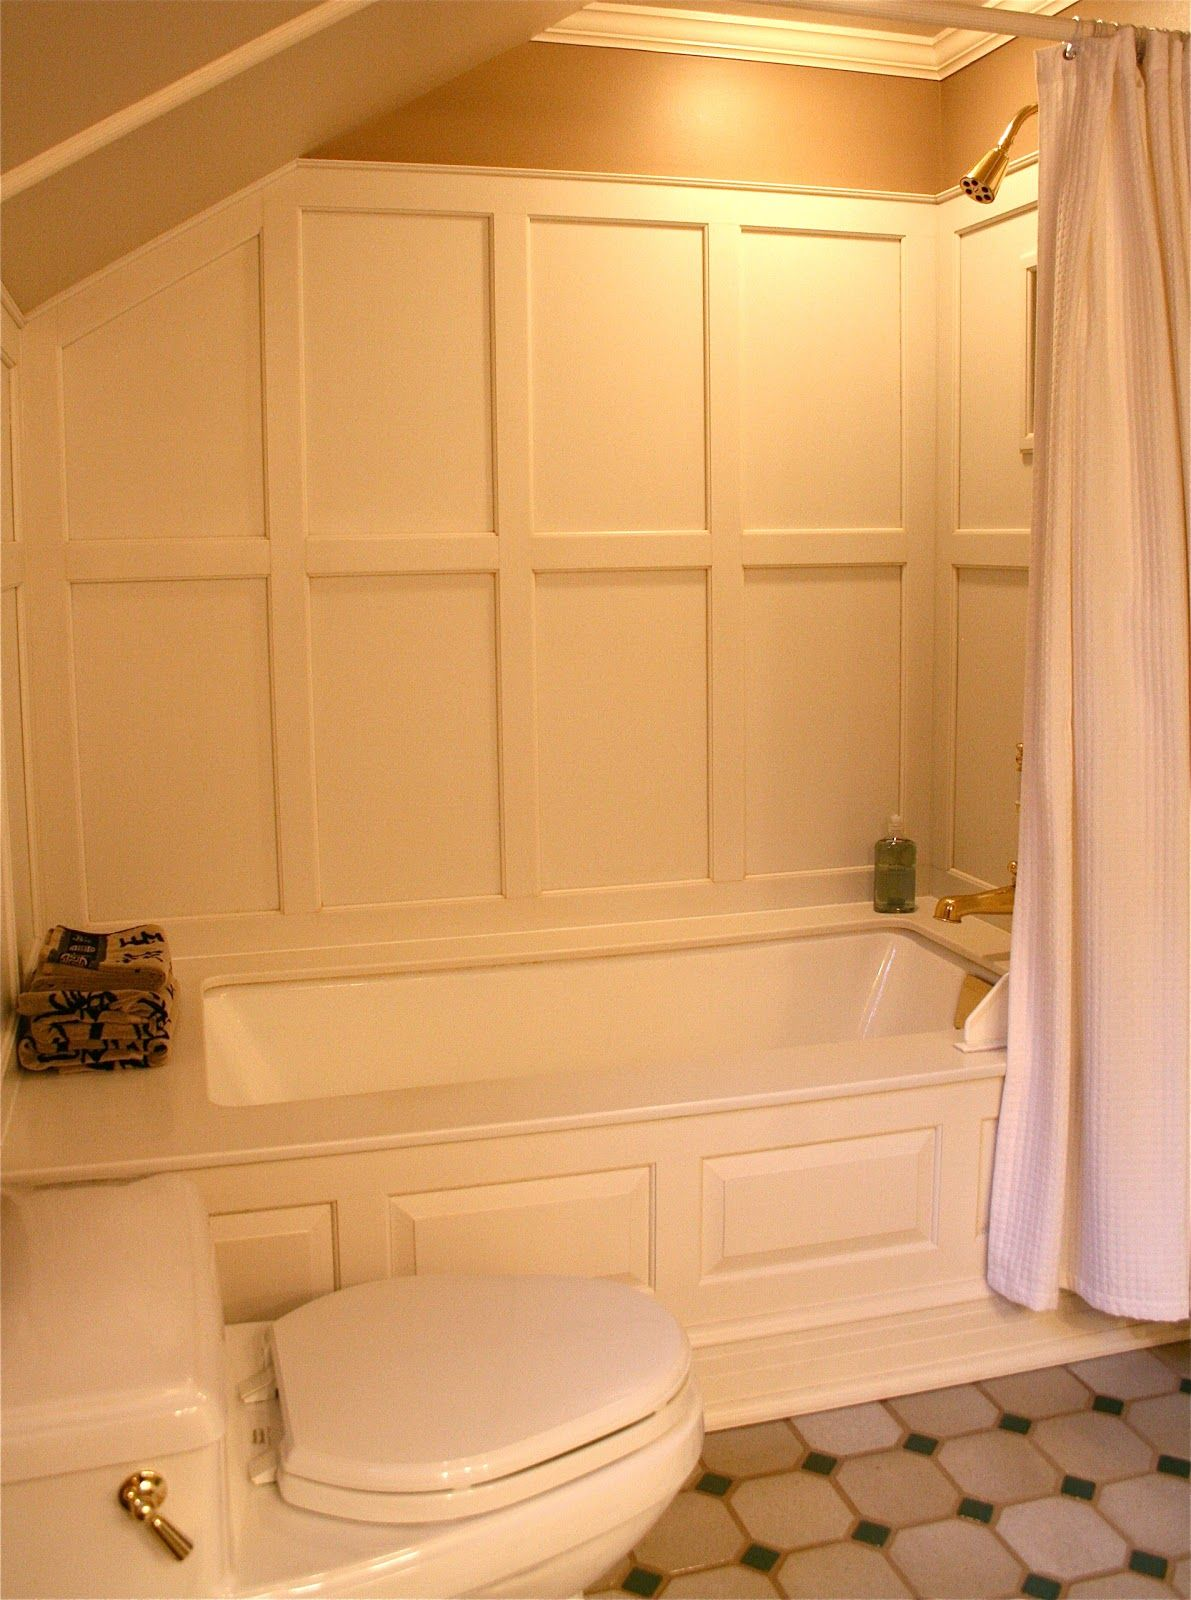 Have You Ever Seen The Walls Surrounding A Bathtub Paneled With Corian? I  Never Had